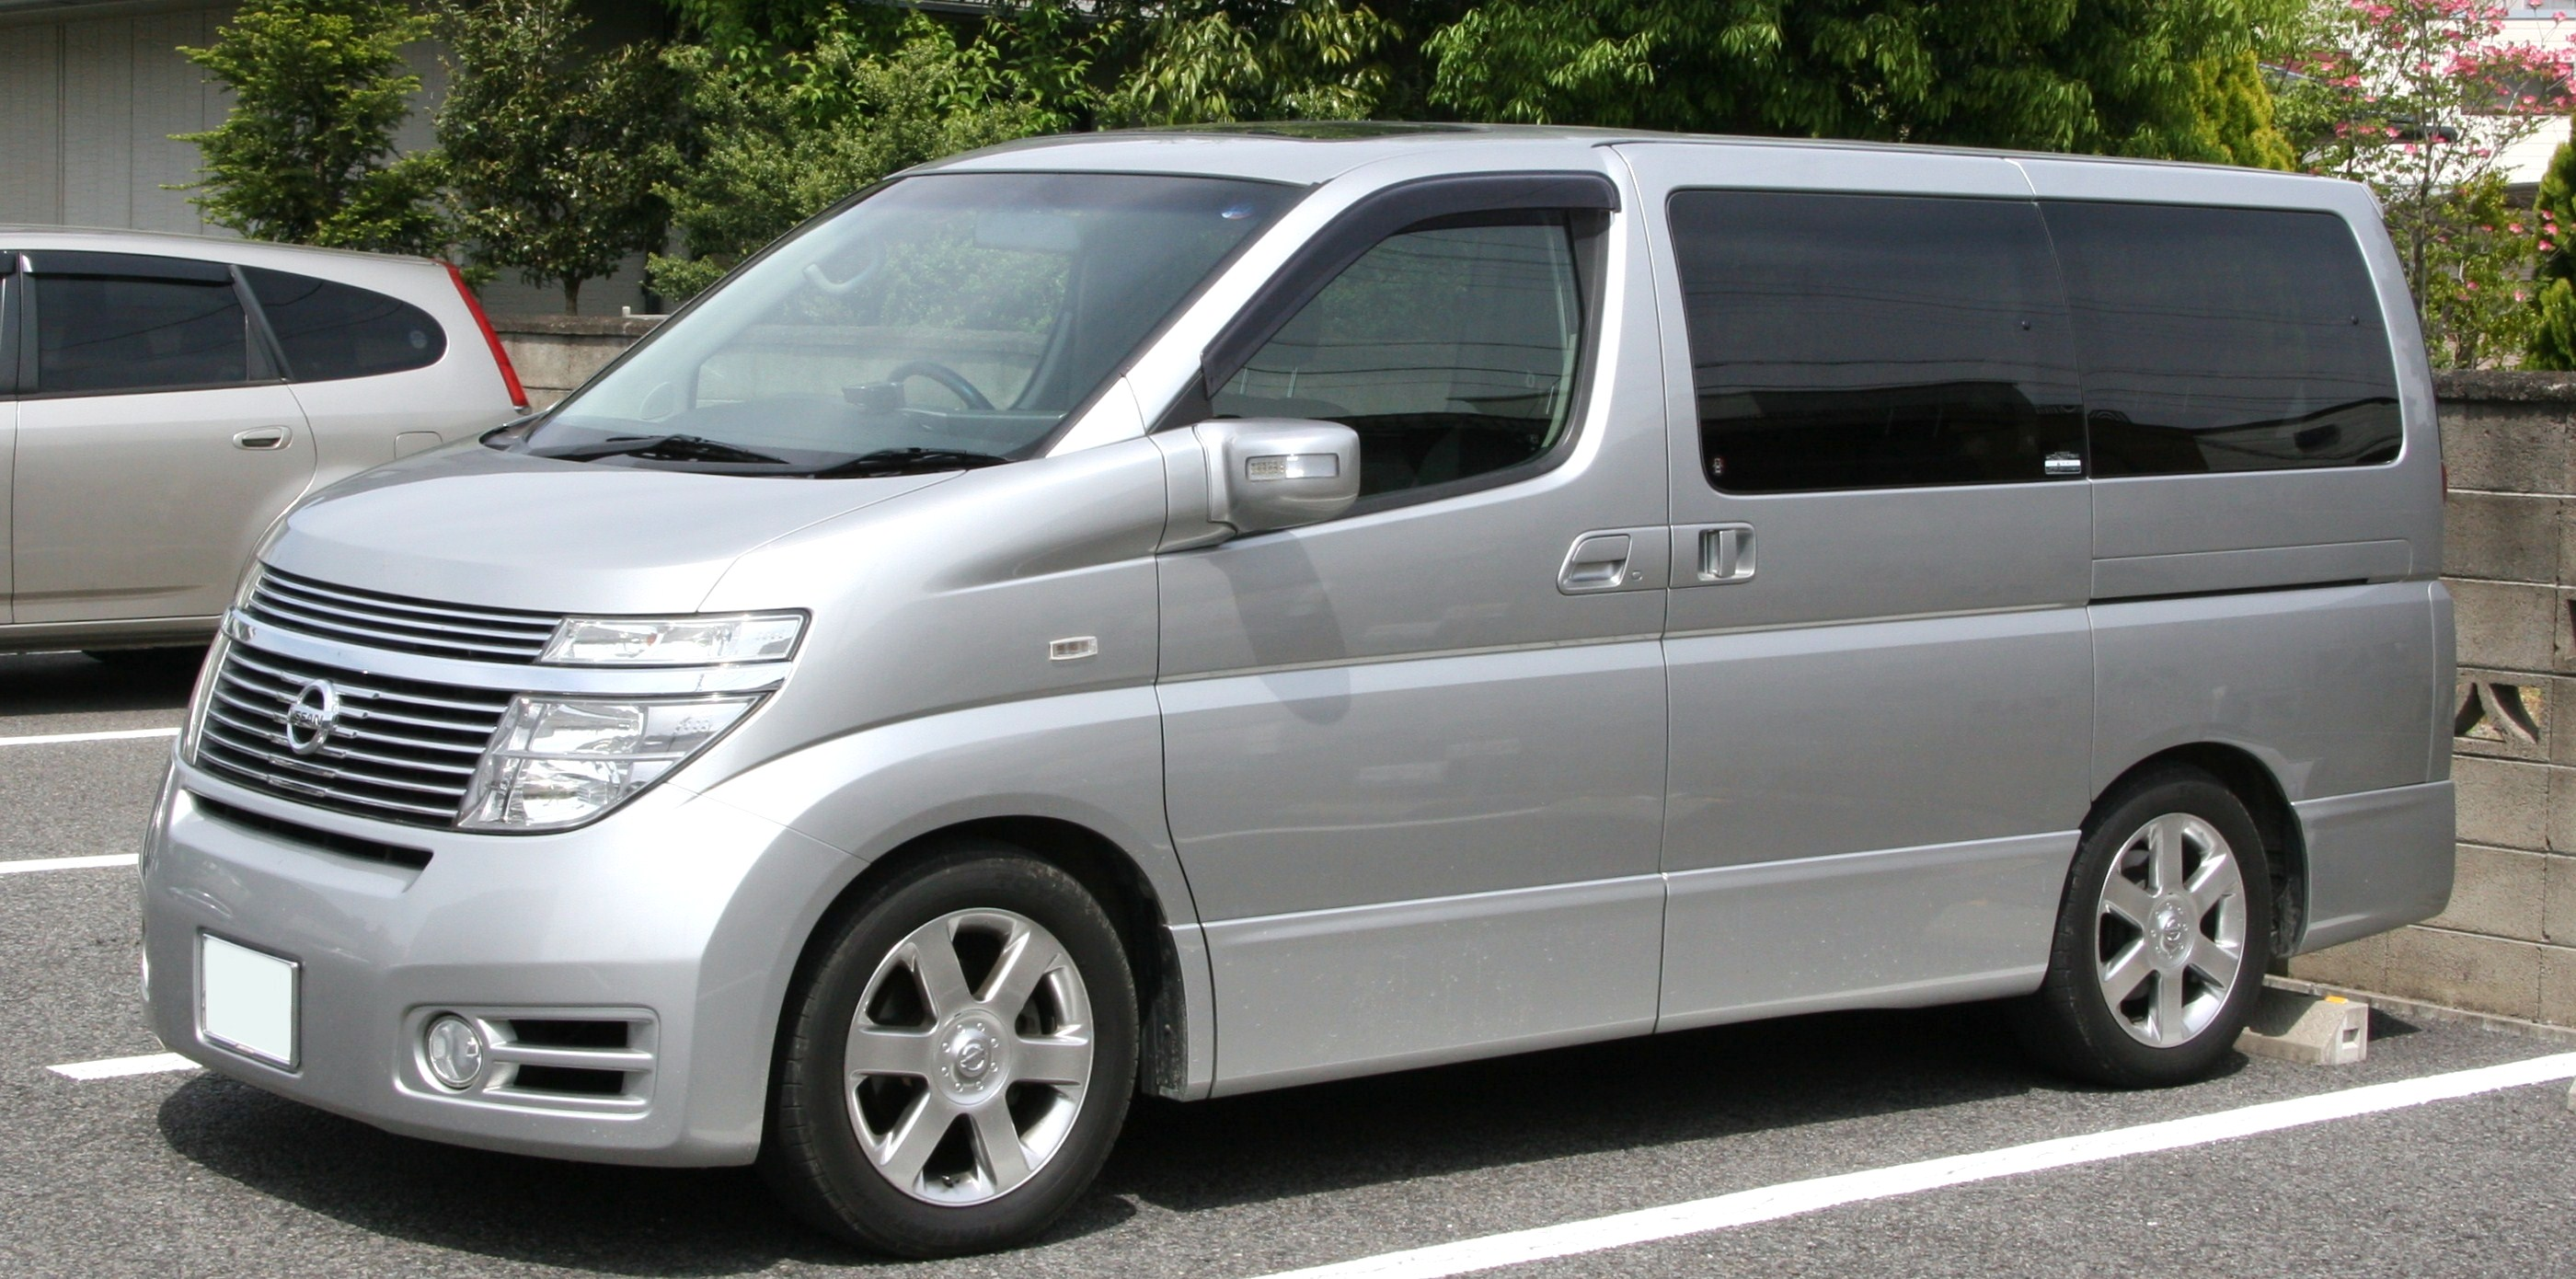 nissan elgrand pictures #14